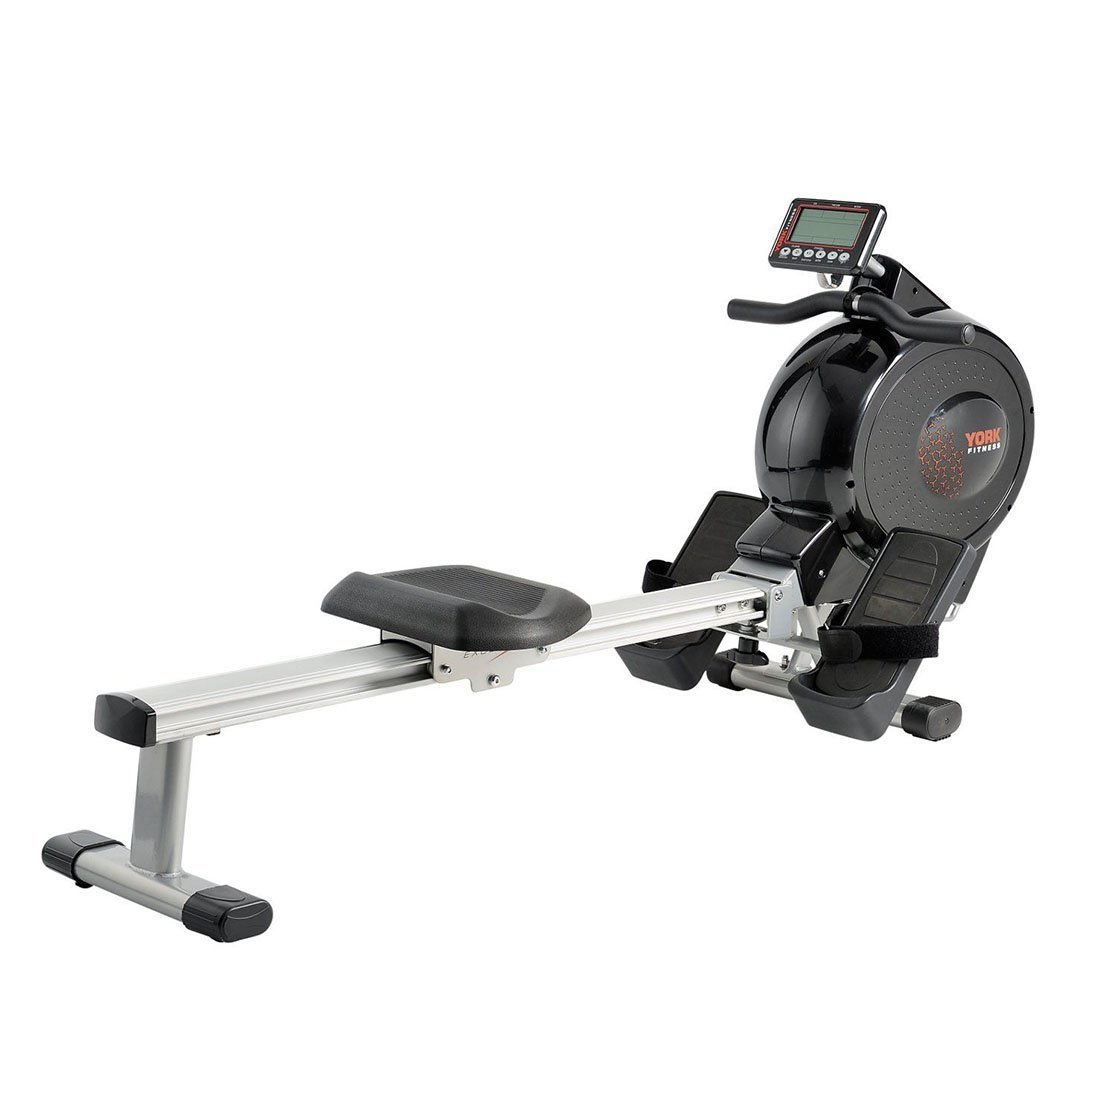 York Excel 310 Foldable Rowing Machine